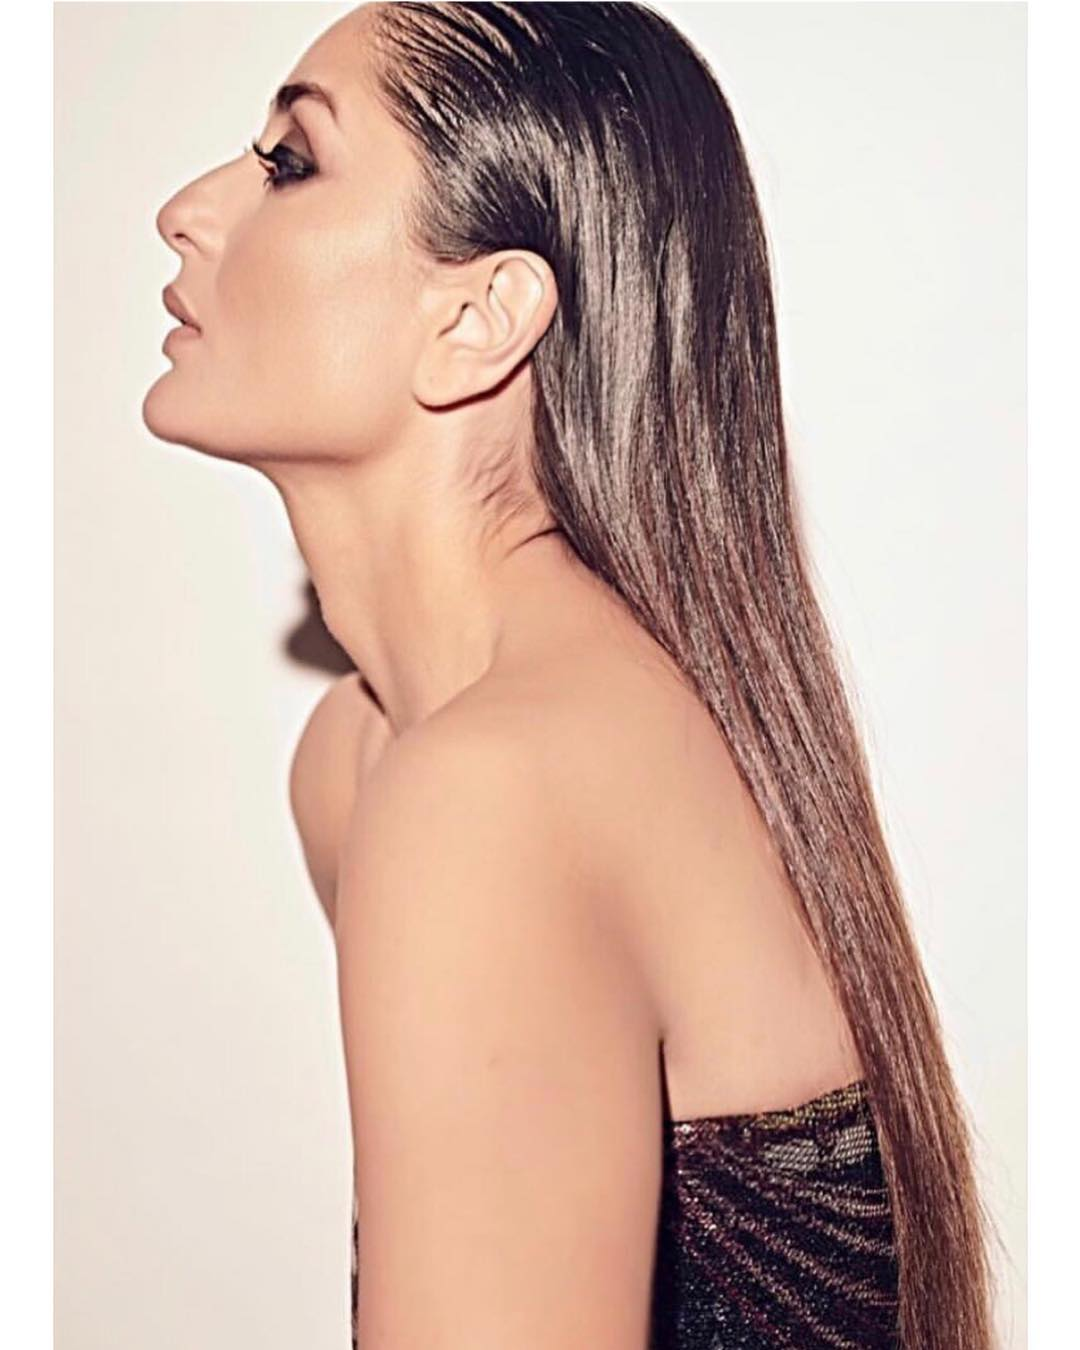 kareena-kapoor-slicked-back-hair